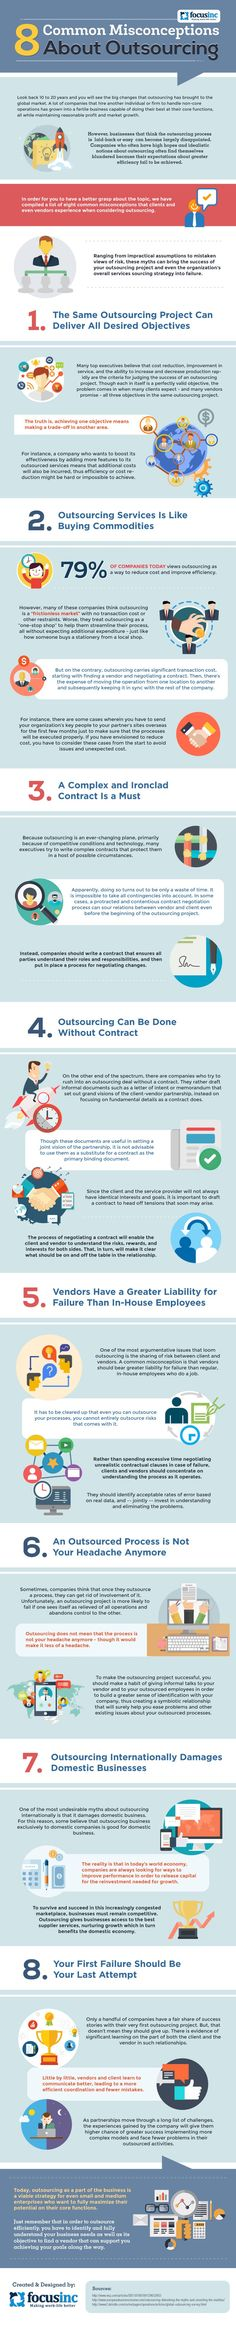 8 Common Misconceptions About Outsourcing [Infographic]